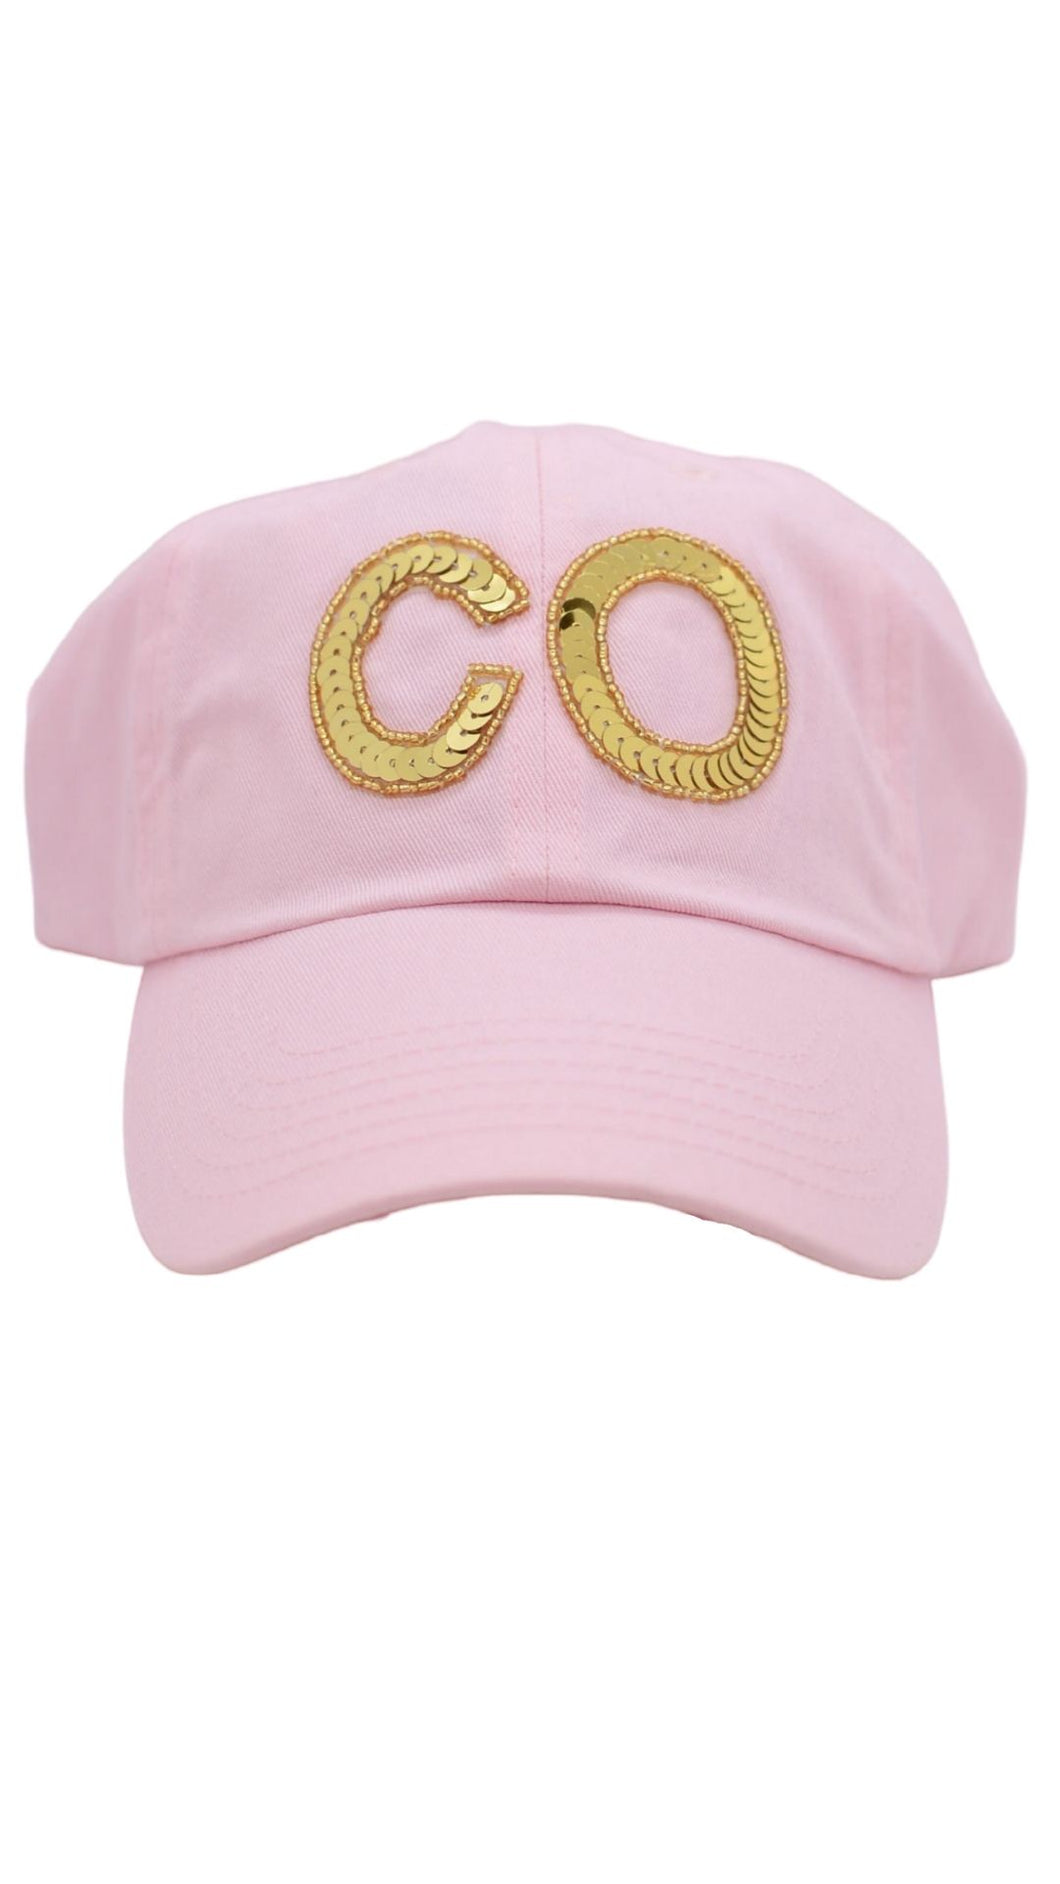 Pink and Gold CO Hat